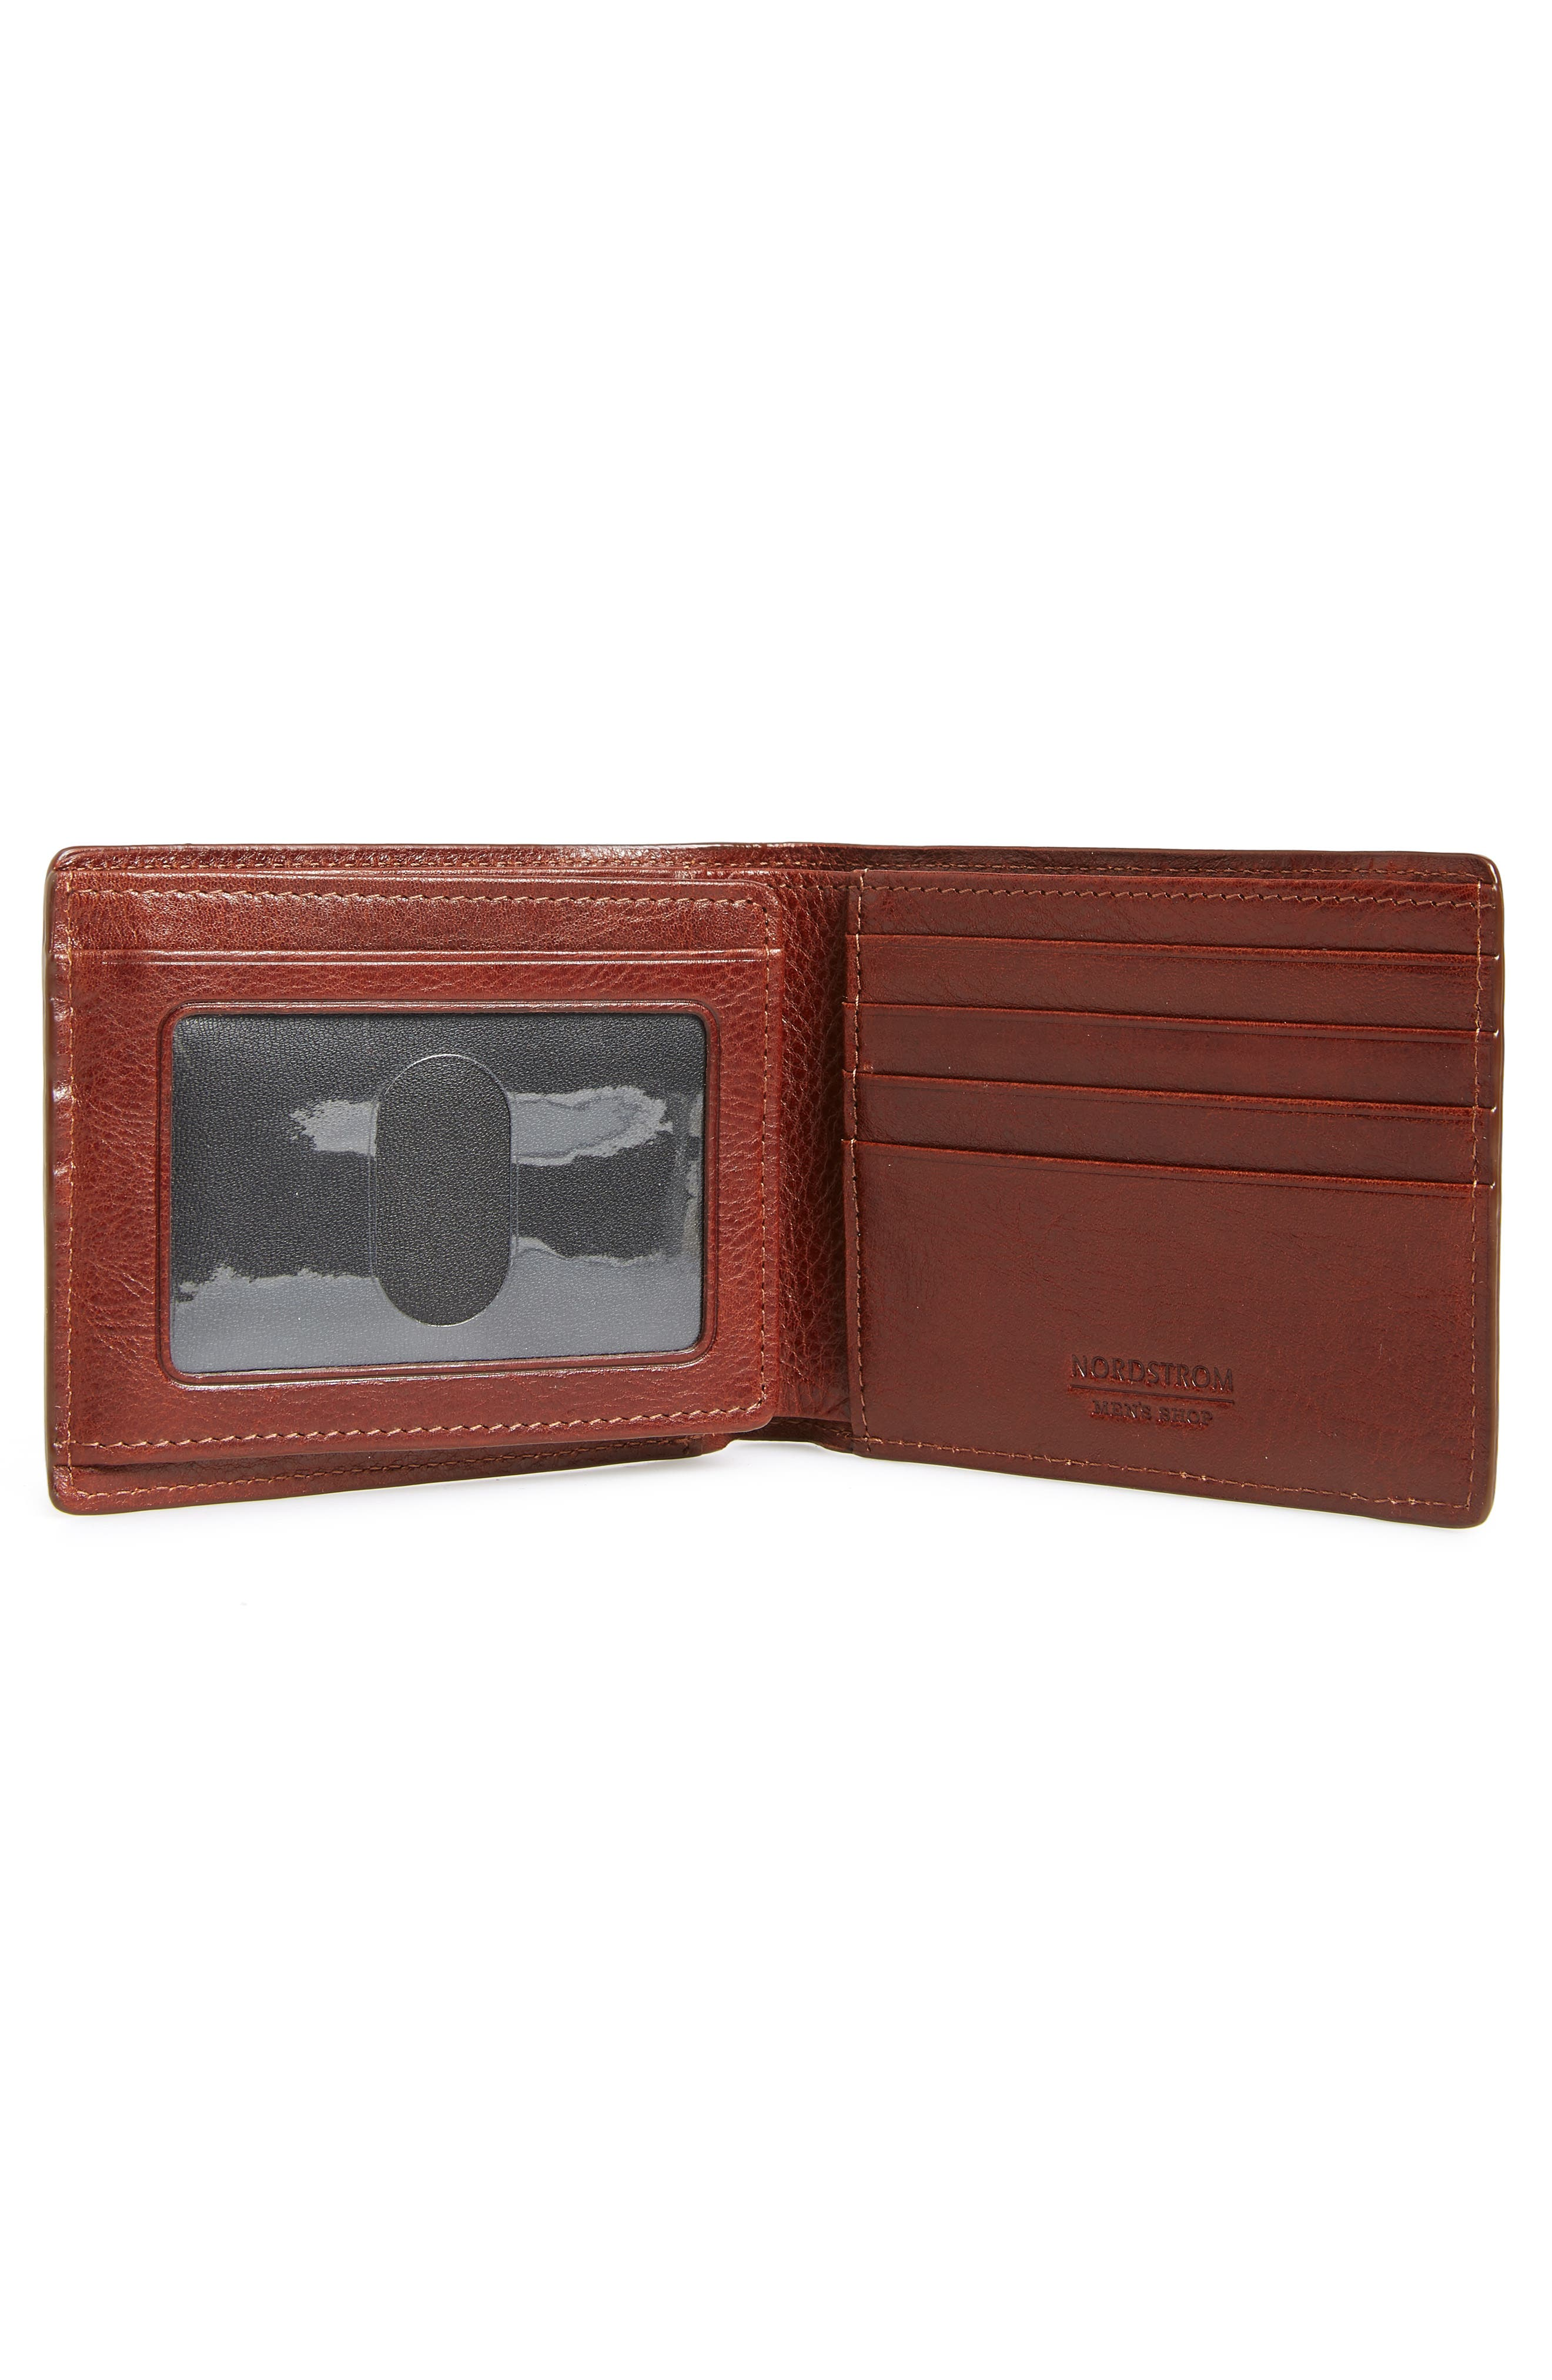 NORDSTROM MEN'S SHOP,                             Richmond Leather Wallet,                             Alternate thumbnail 2, color,                             BROWN HENNA